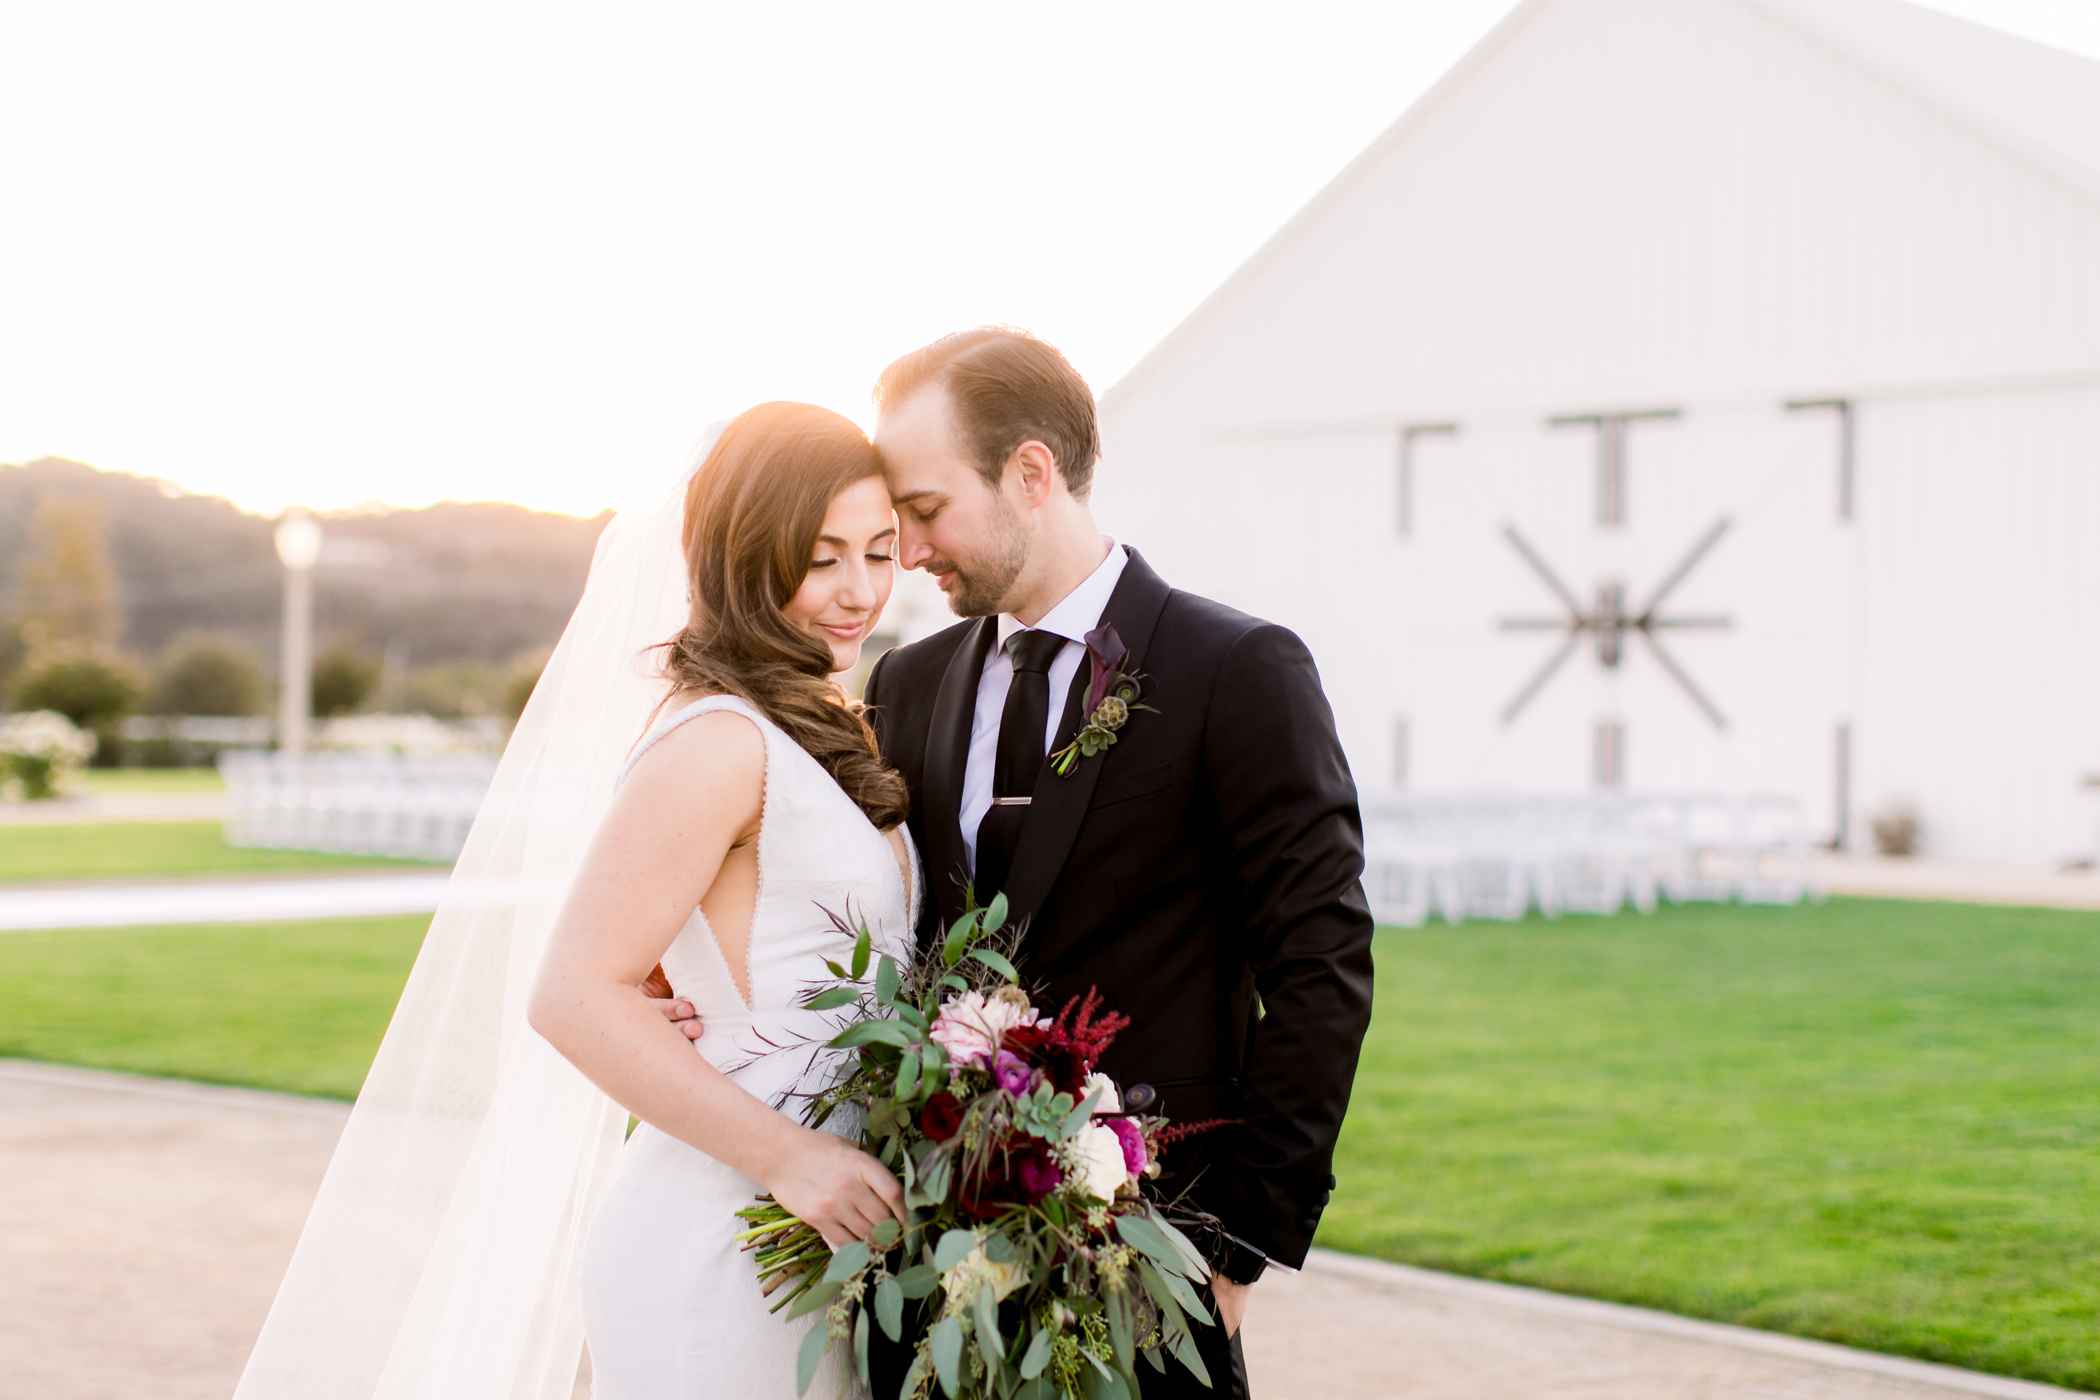 www.santabarbarawedding.com | The White Barn | Location Spotlight | Tayler Enerle